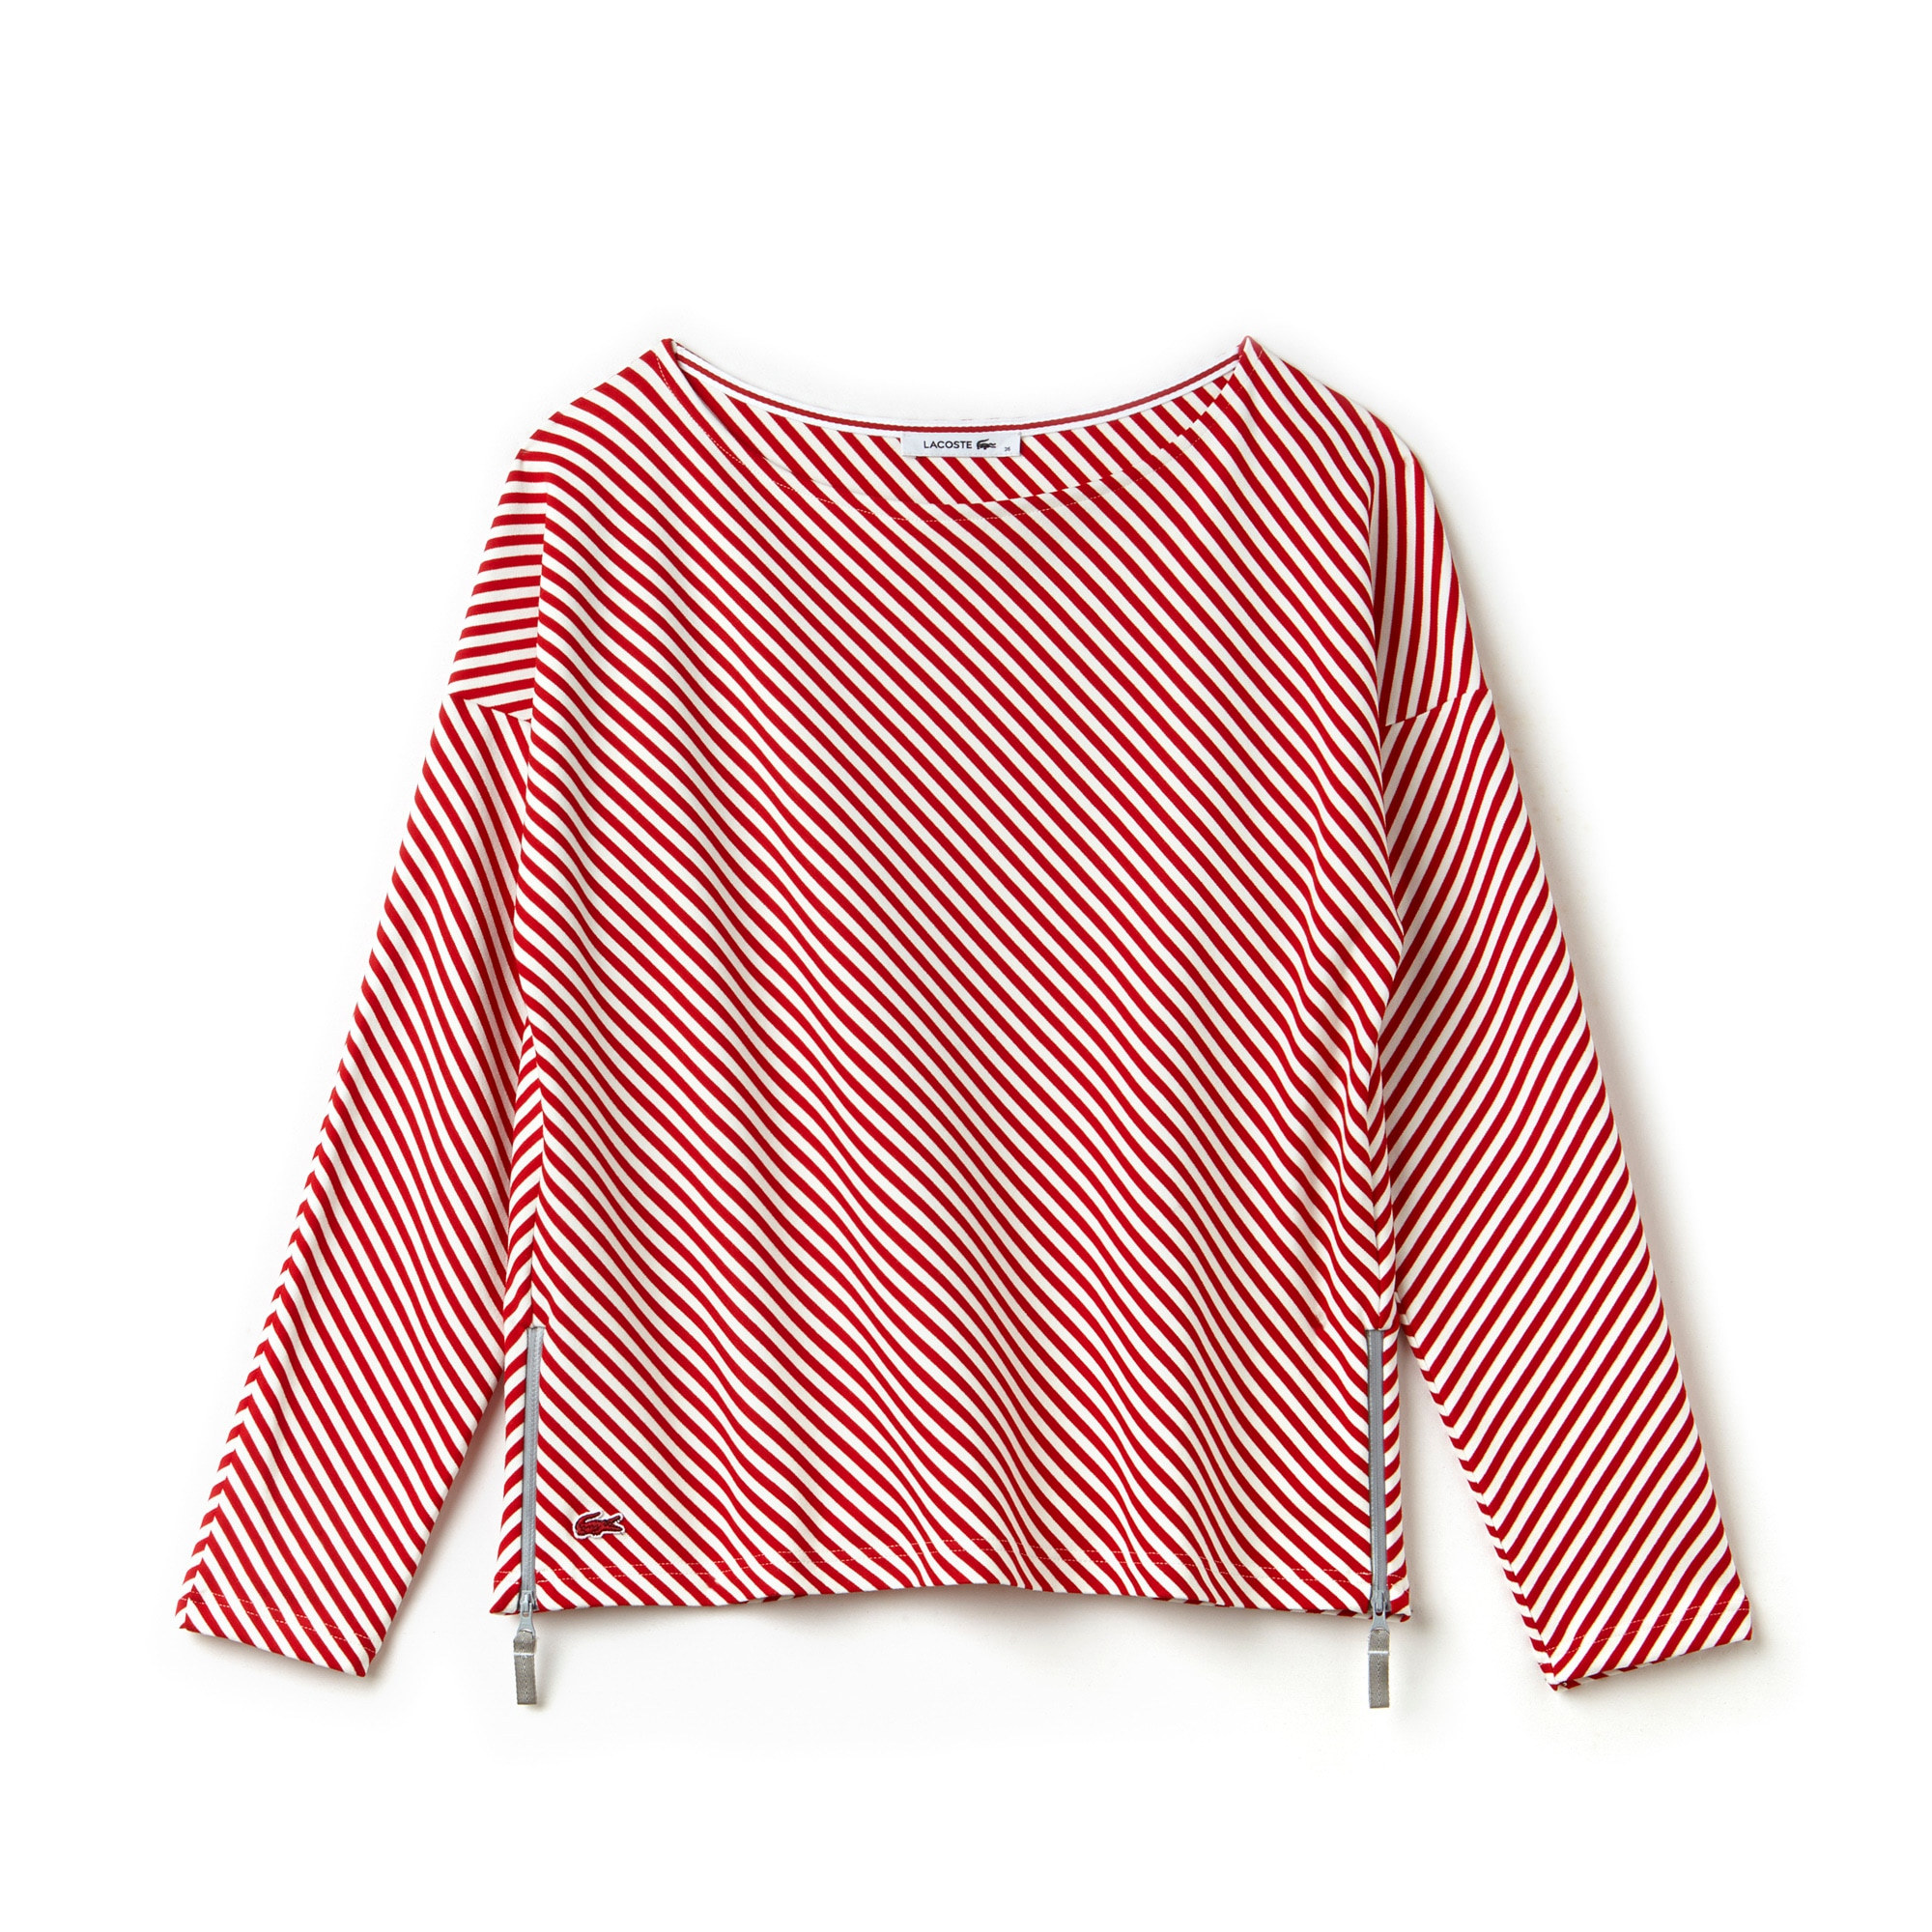 Women's Nautical Striped Jacquard Crew Neck Sweatshirt